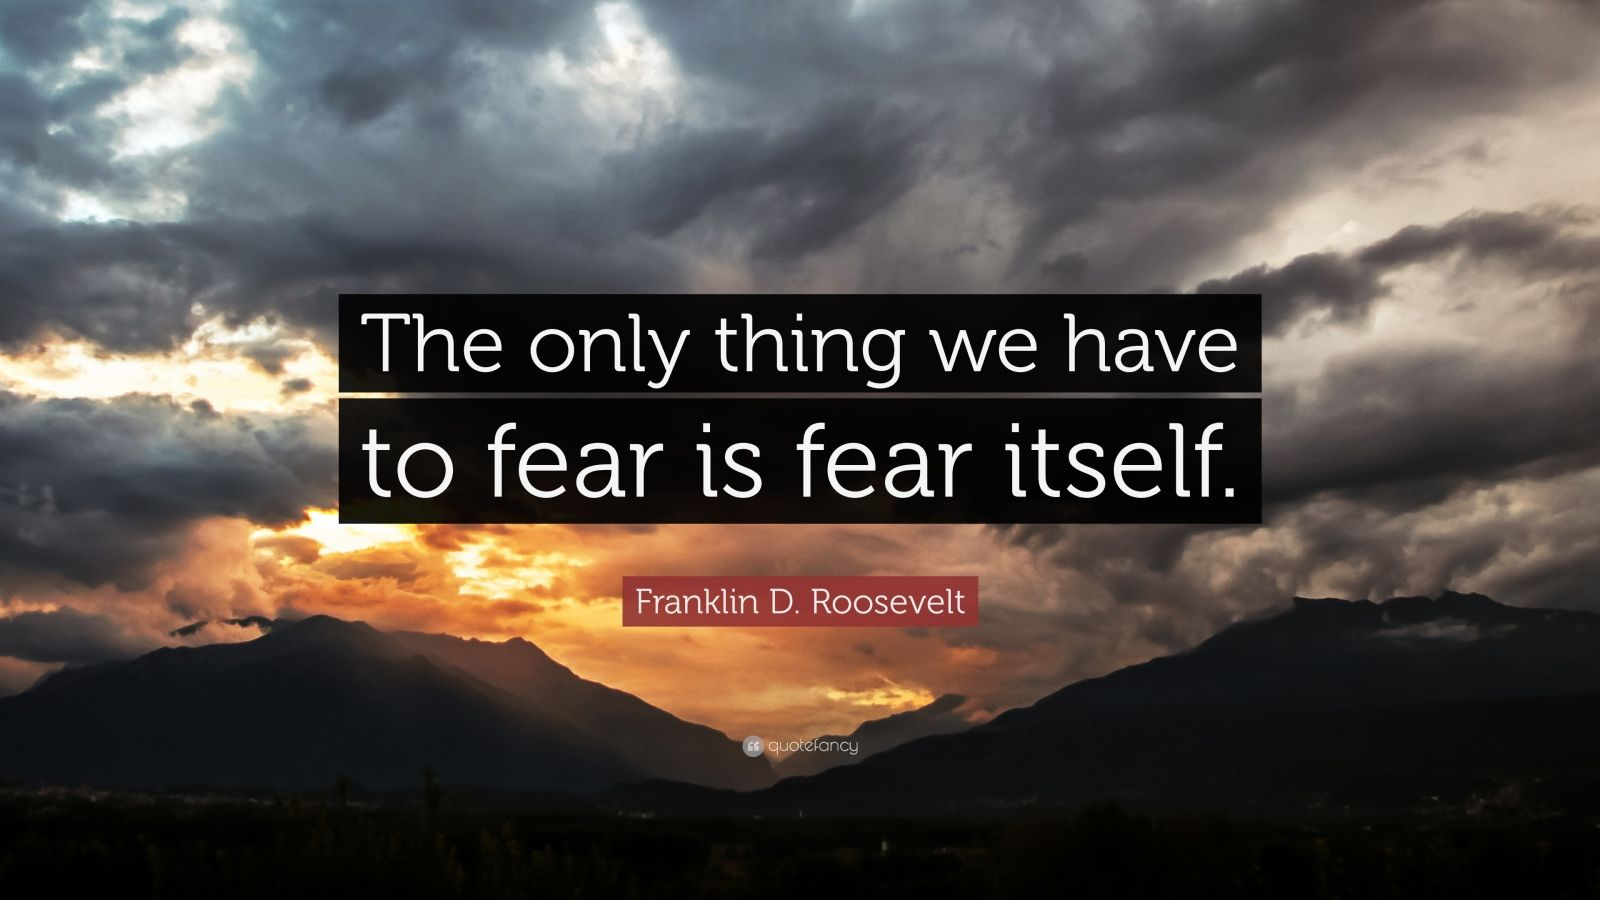 Napoleon Hill Quotes Wallpaper Franklin D Roosevelt Quote The Only Thing We Have To